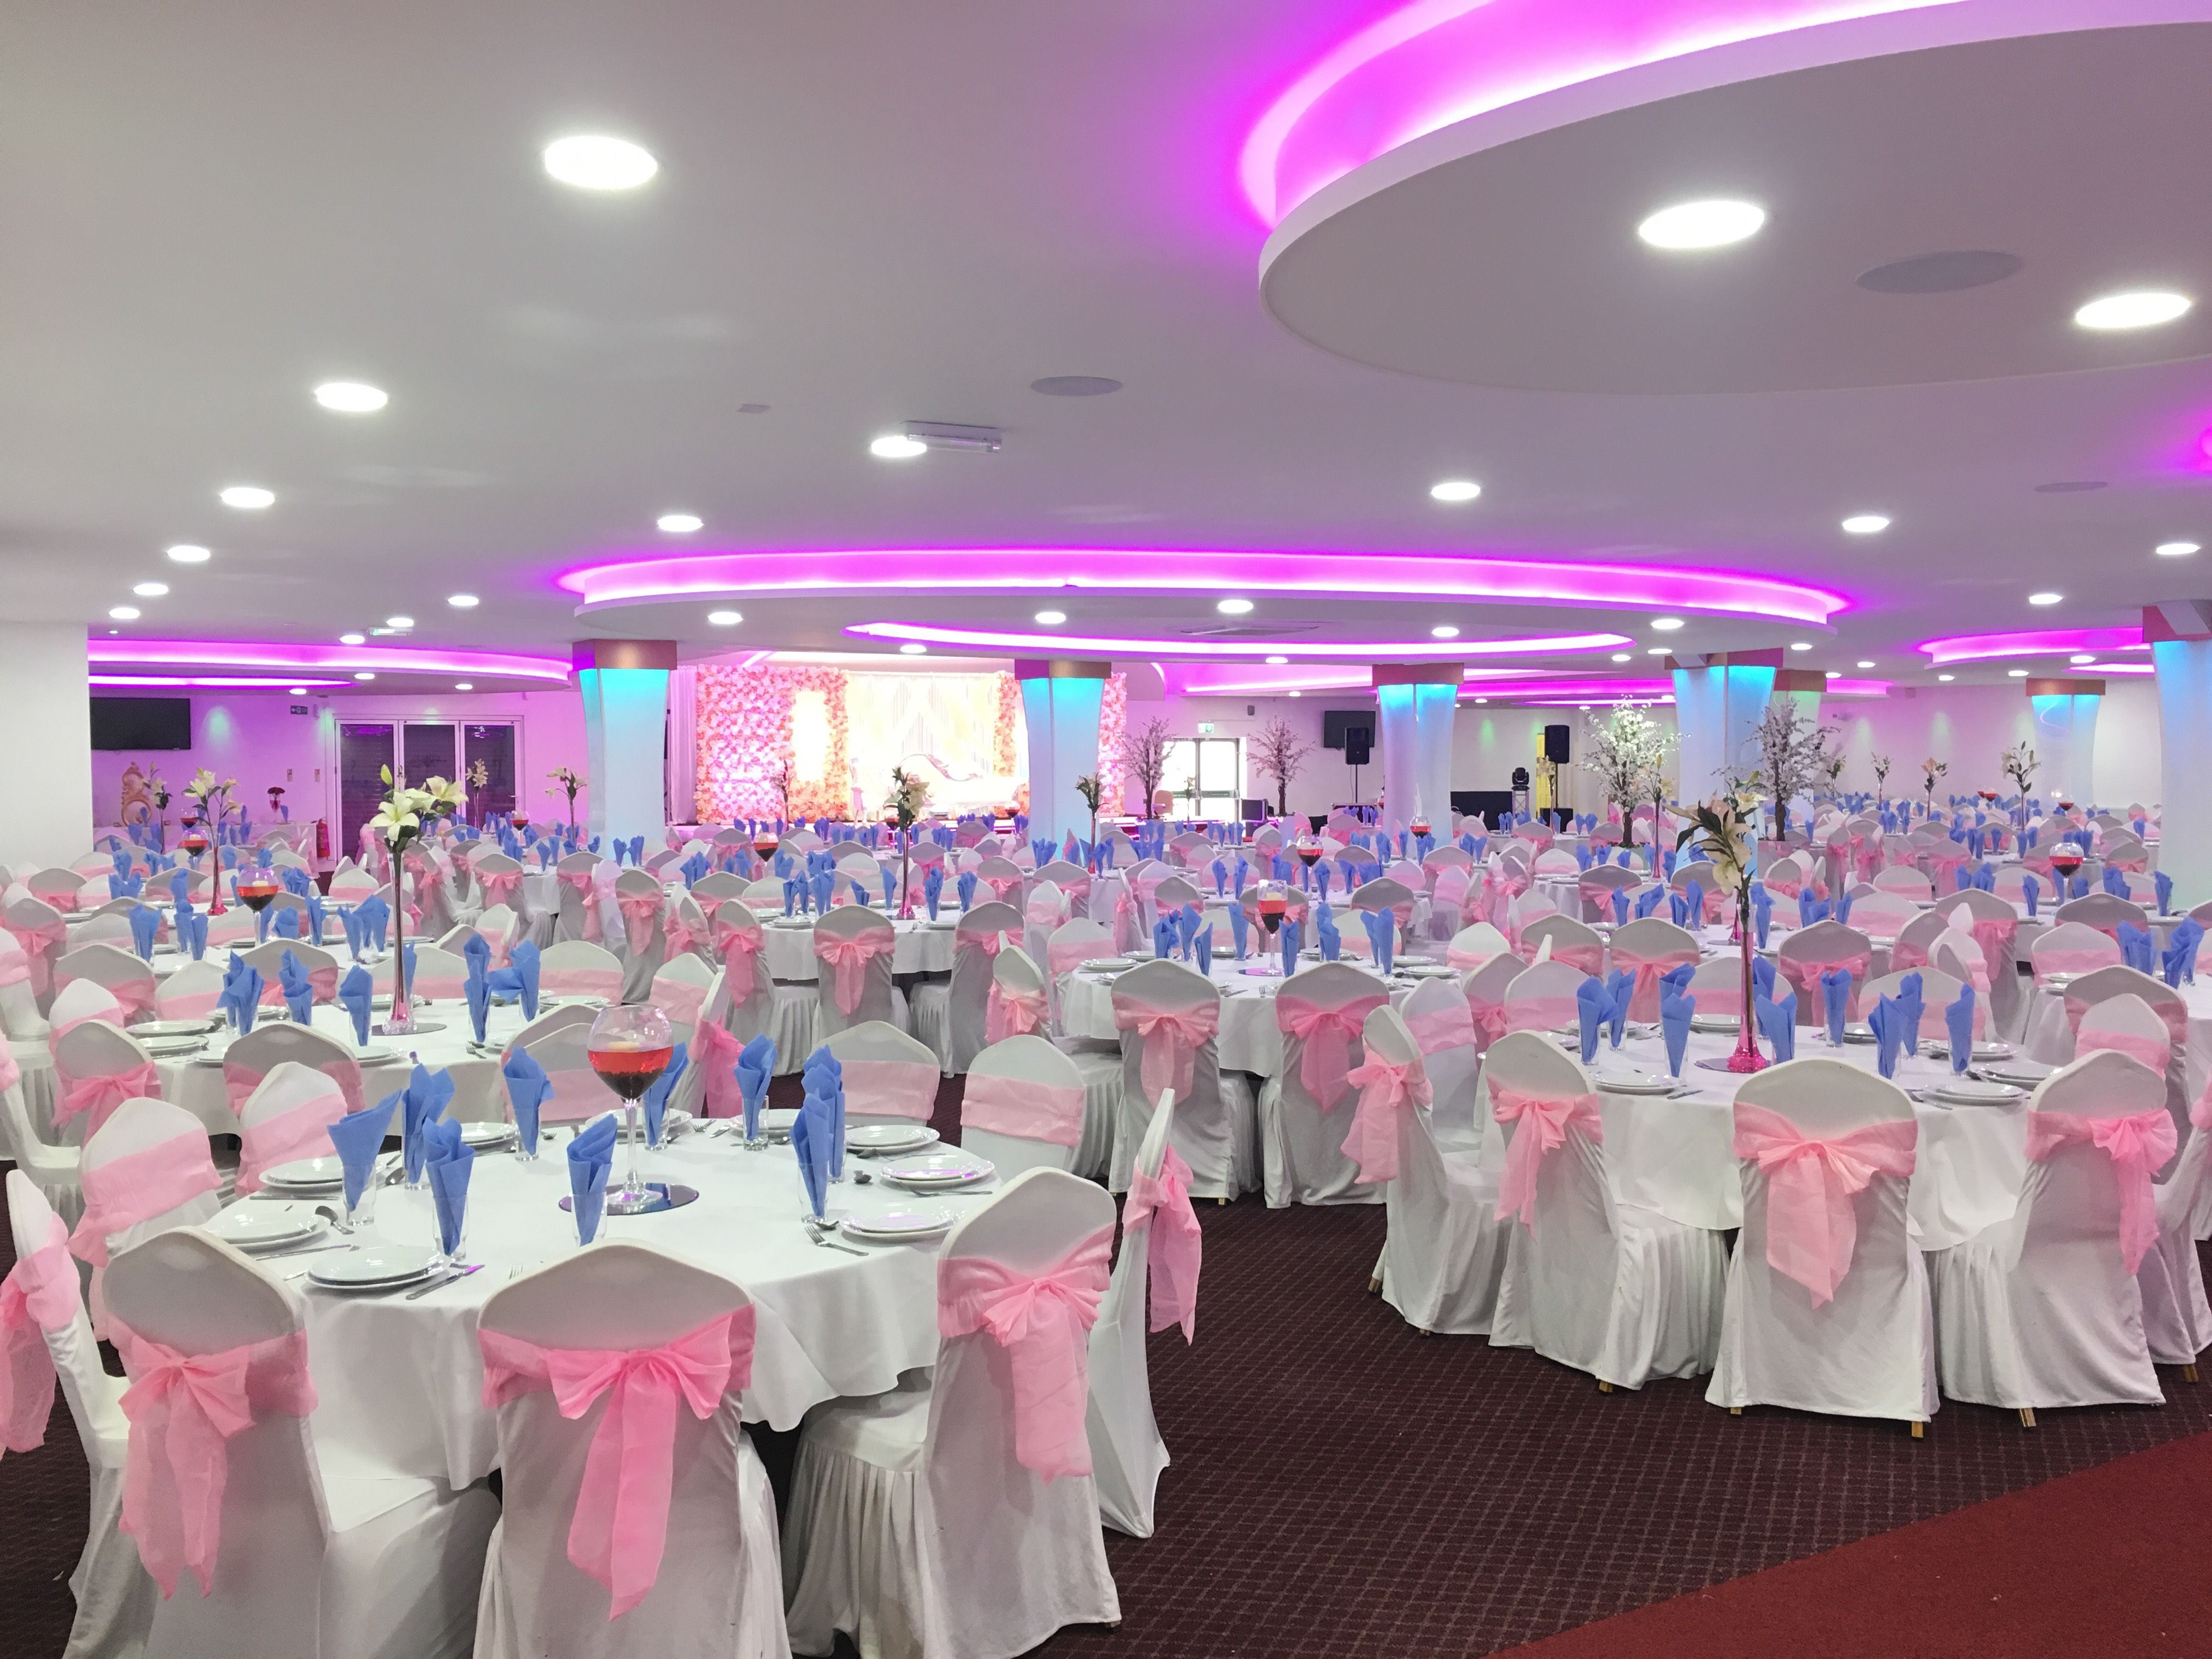 Find This Pin And More On Asian Wedding Birmingham By Almirajbirmingham